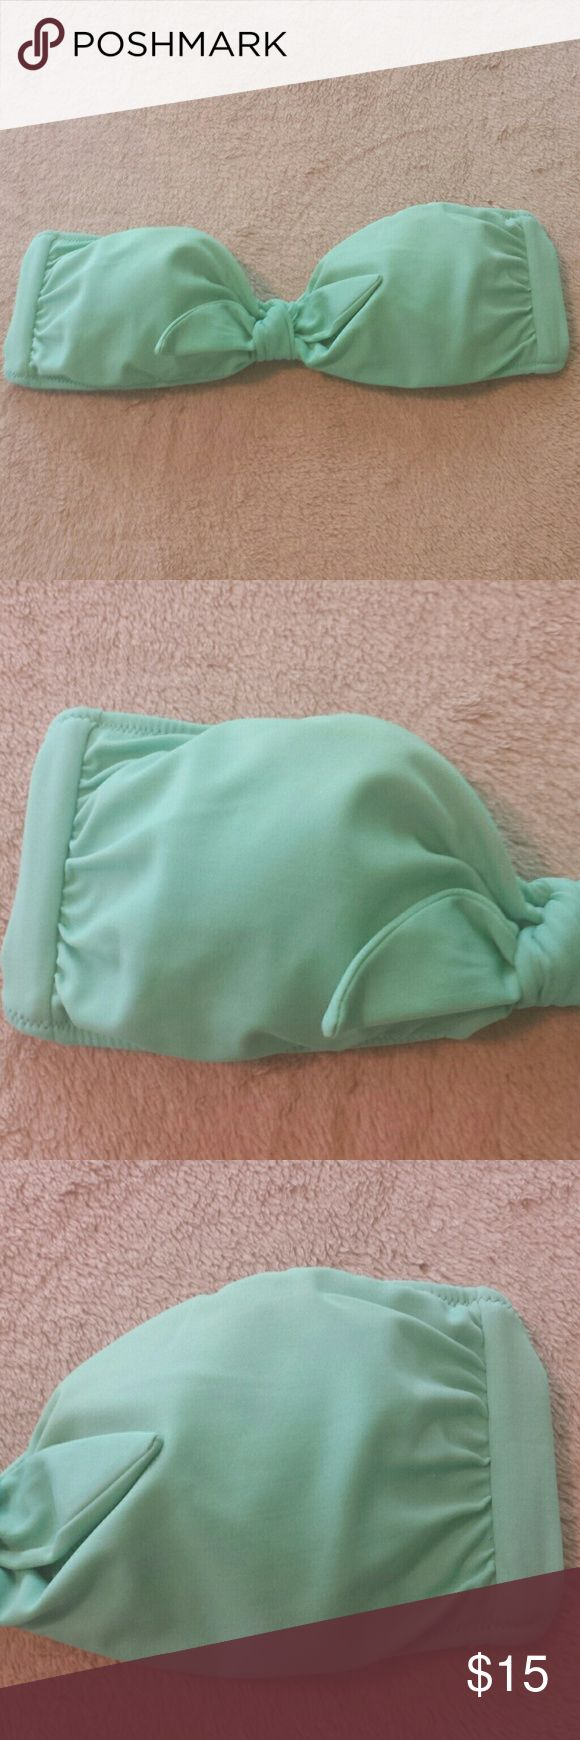 Victoria's Secret Bandeau Bikini Top. Sz. Med. Sea foam/ seafoam / mint green bandeau bikini top by Victoria's Secret. No holes or stains. Good used condition. Zoom in on all pics to see condition for yourself. It is lightly padded, no underwire, size Small. Straps are not included. Victoria's Secret Swim Bikinis